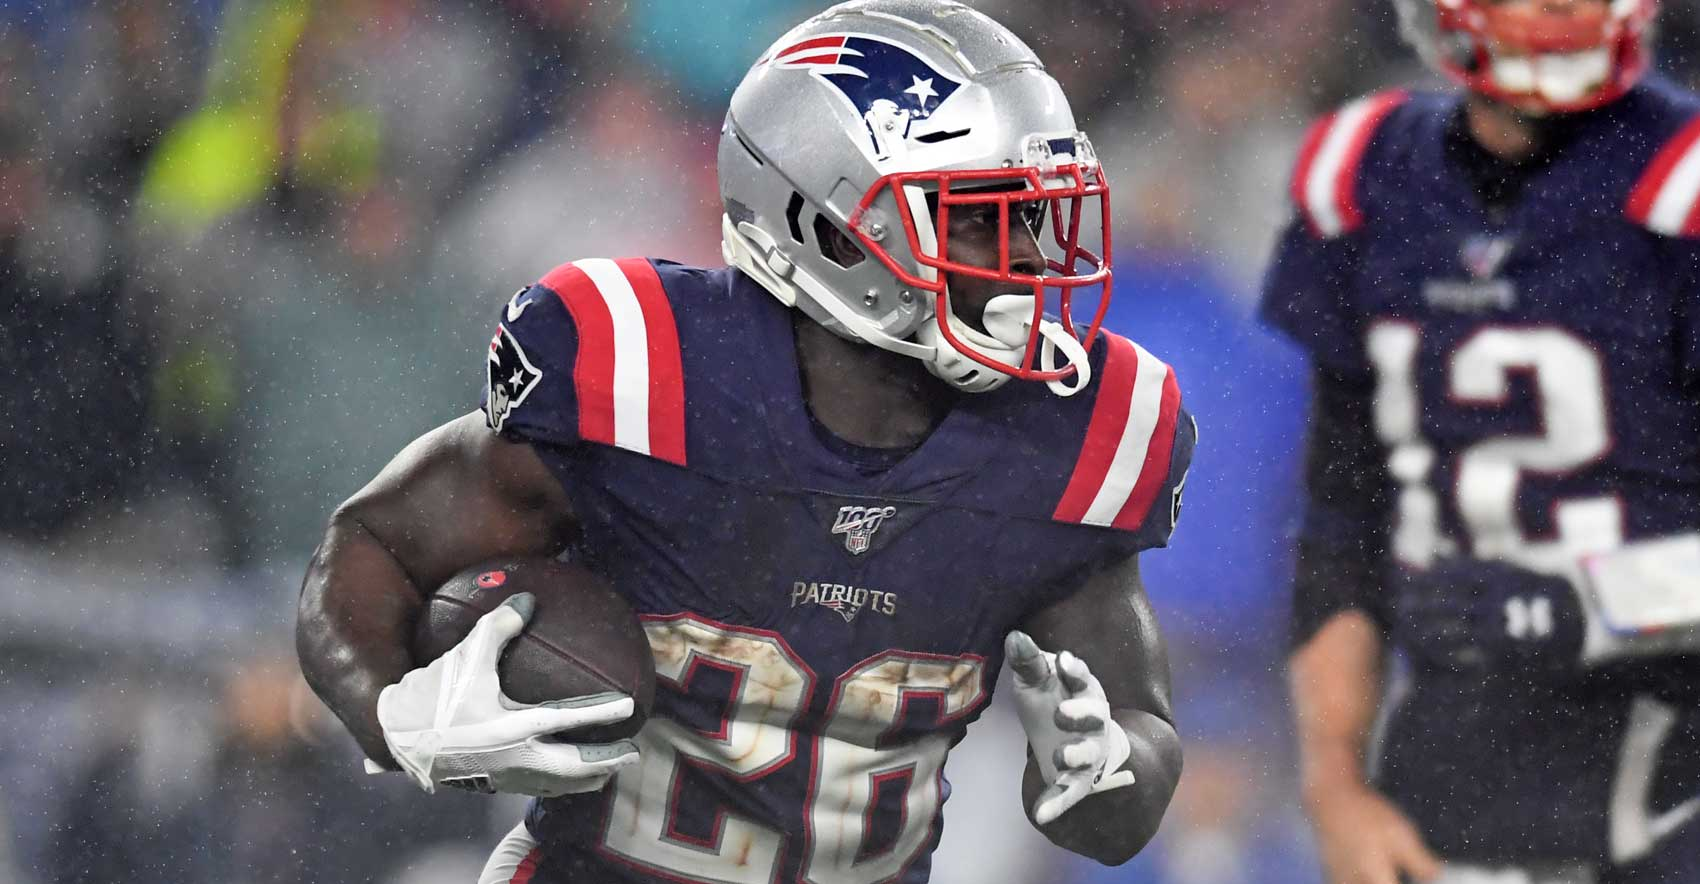 NFL Week 12 Weather Conditions (Fantasy Football)